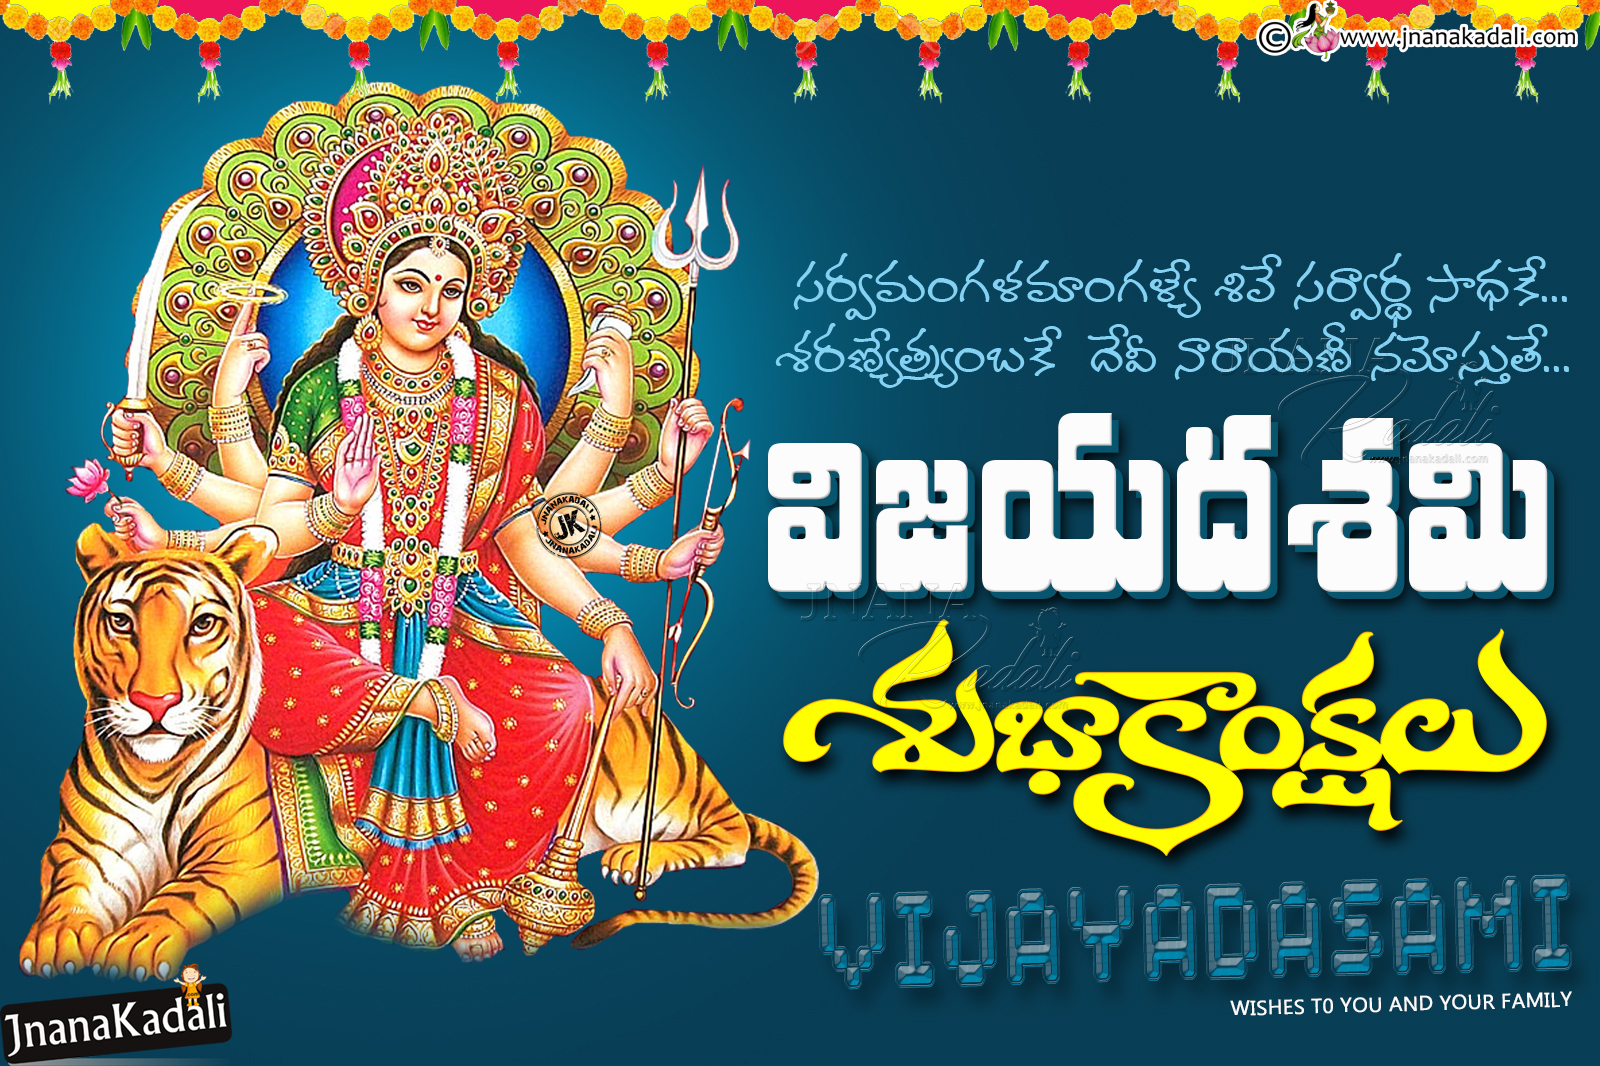 dussehra essay in telugu India is a land of festivals there are several major festivals which include diwali, dussehra, id, holi, christmas, janamashtami etc dussehra is an important festival of hindus.